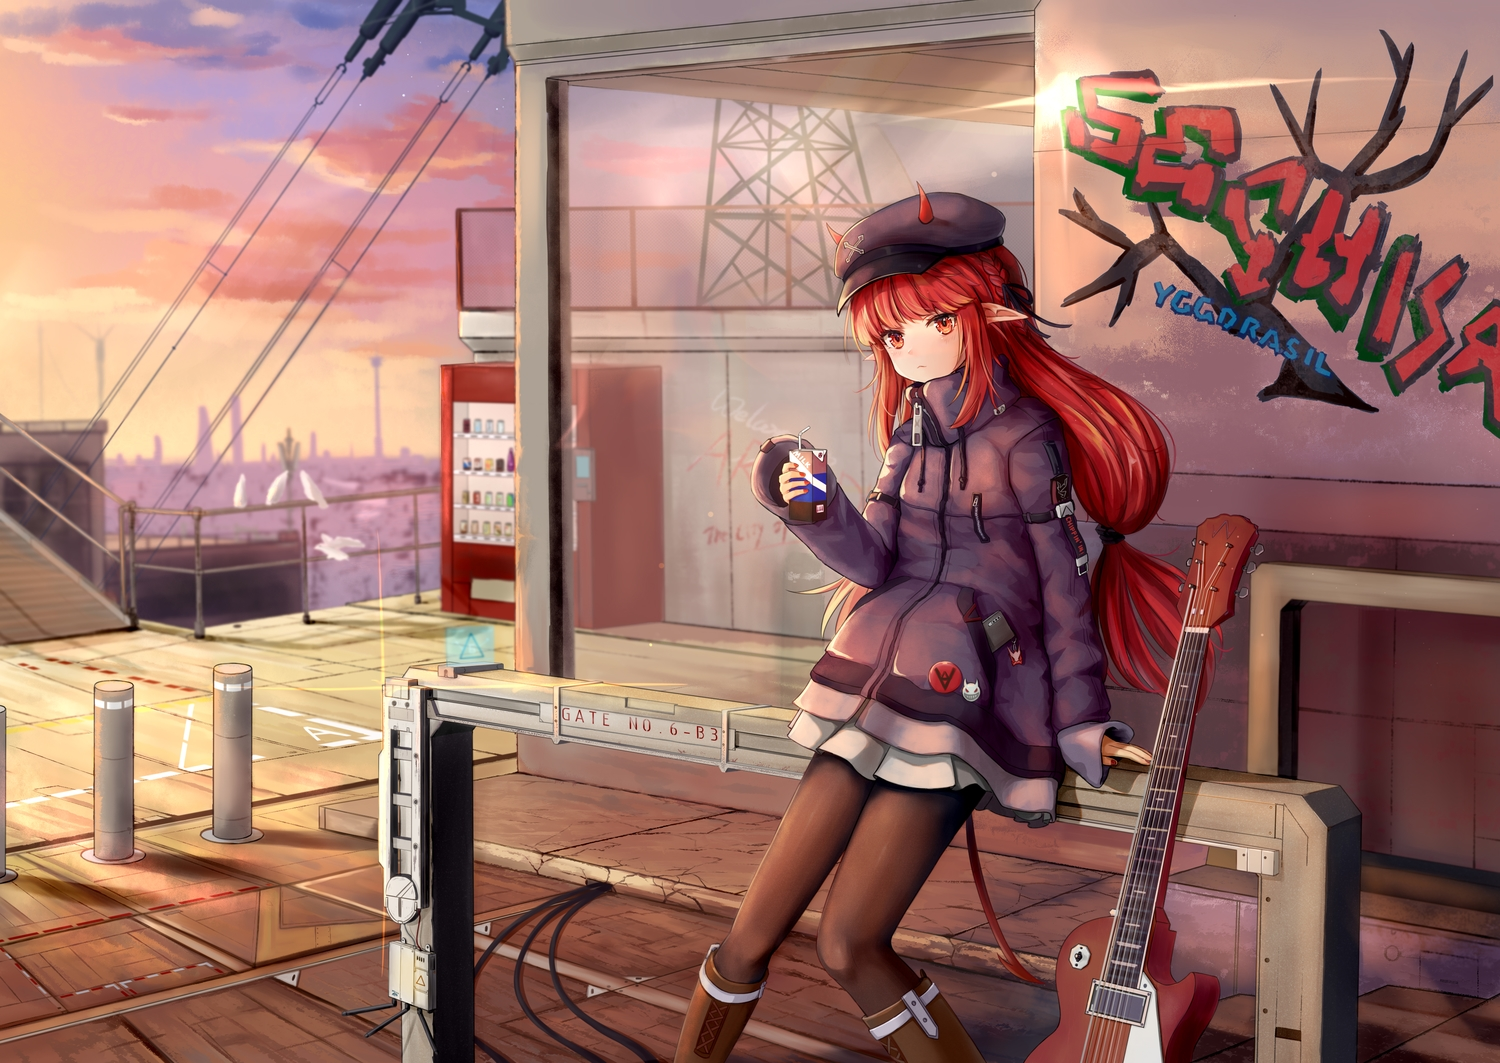 arknights boots braids clouds drink graffiti guitar hat horns industrial instrument long_hair pantyhose phone pointed_ears red_eyes red_hair sechka skirt sky sunset vigna_(arknights)